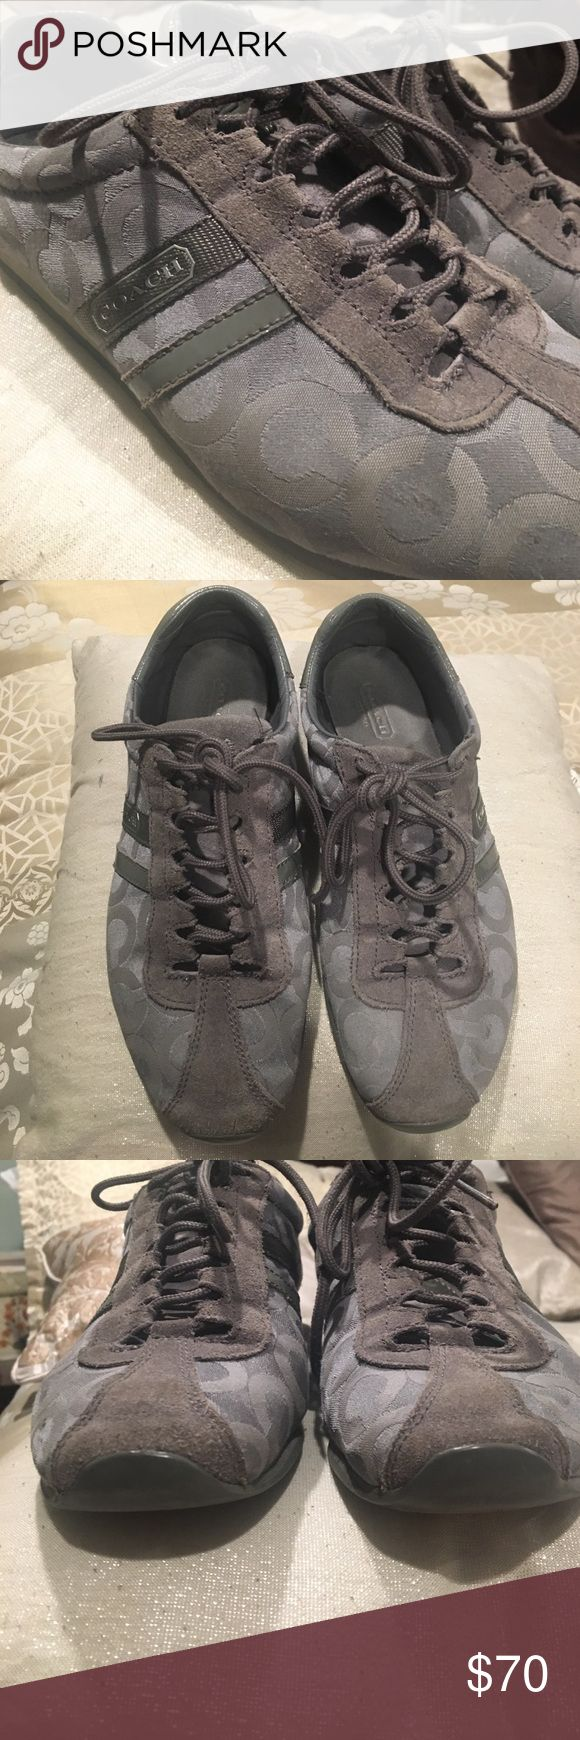 Coach sneakers! In good conditions, used Coach sneaker, well taken care of. Coach Shoes Sneakers